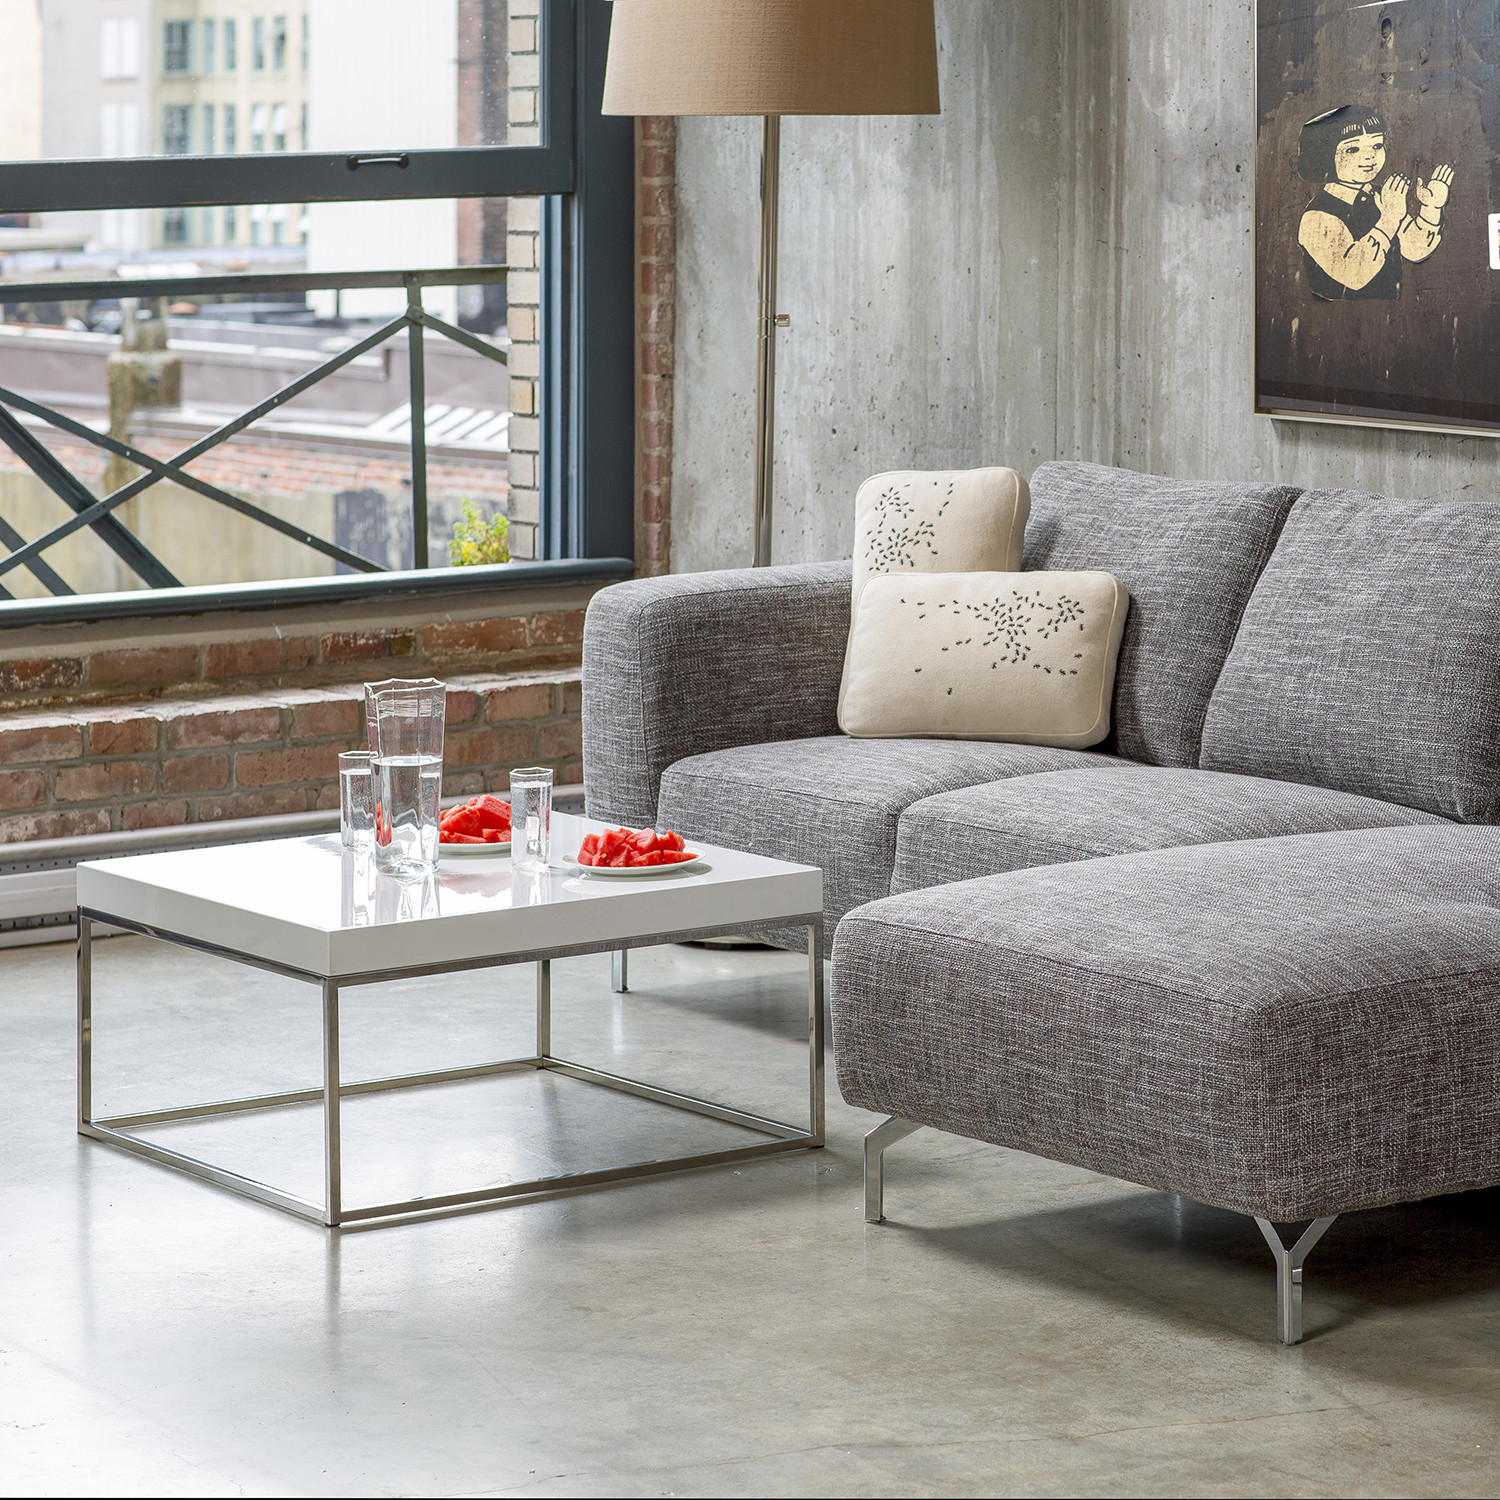 Kubo 30 square coffee table high gloss white - How high is a coffee table ...